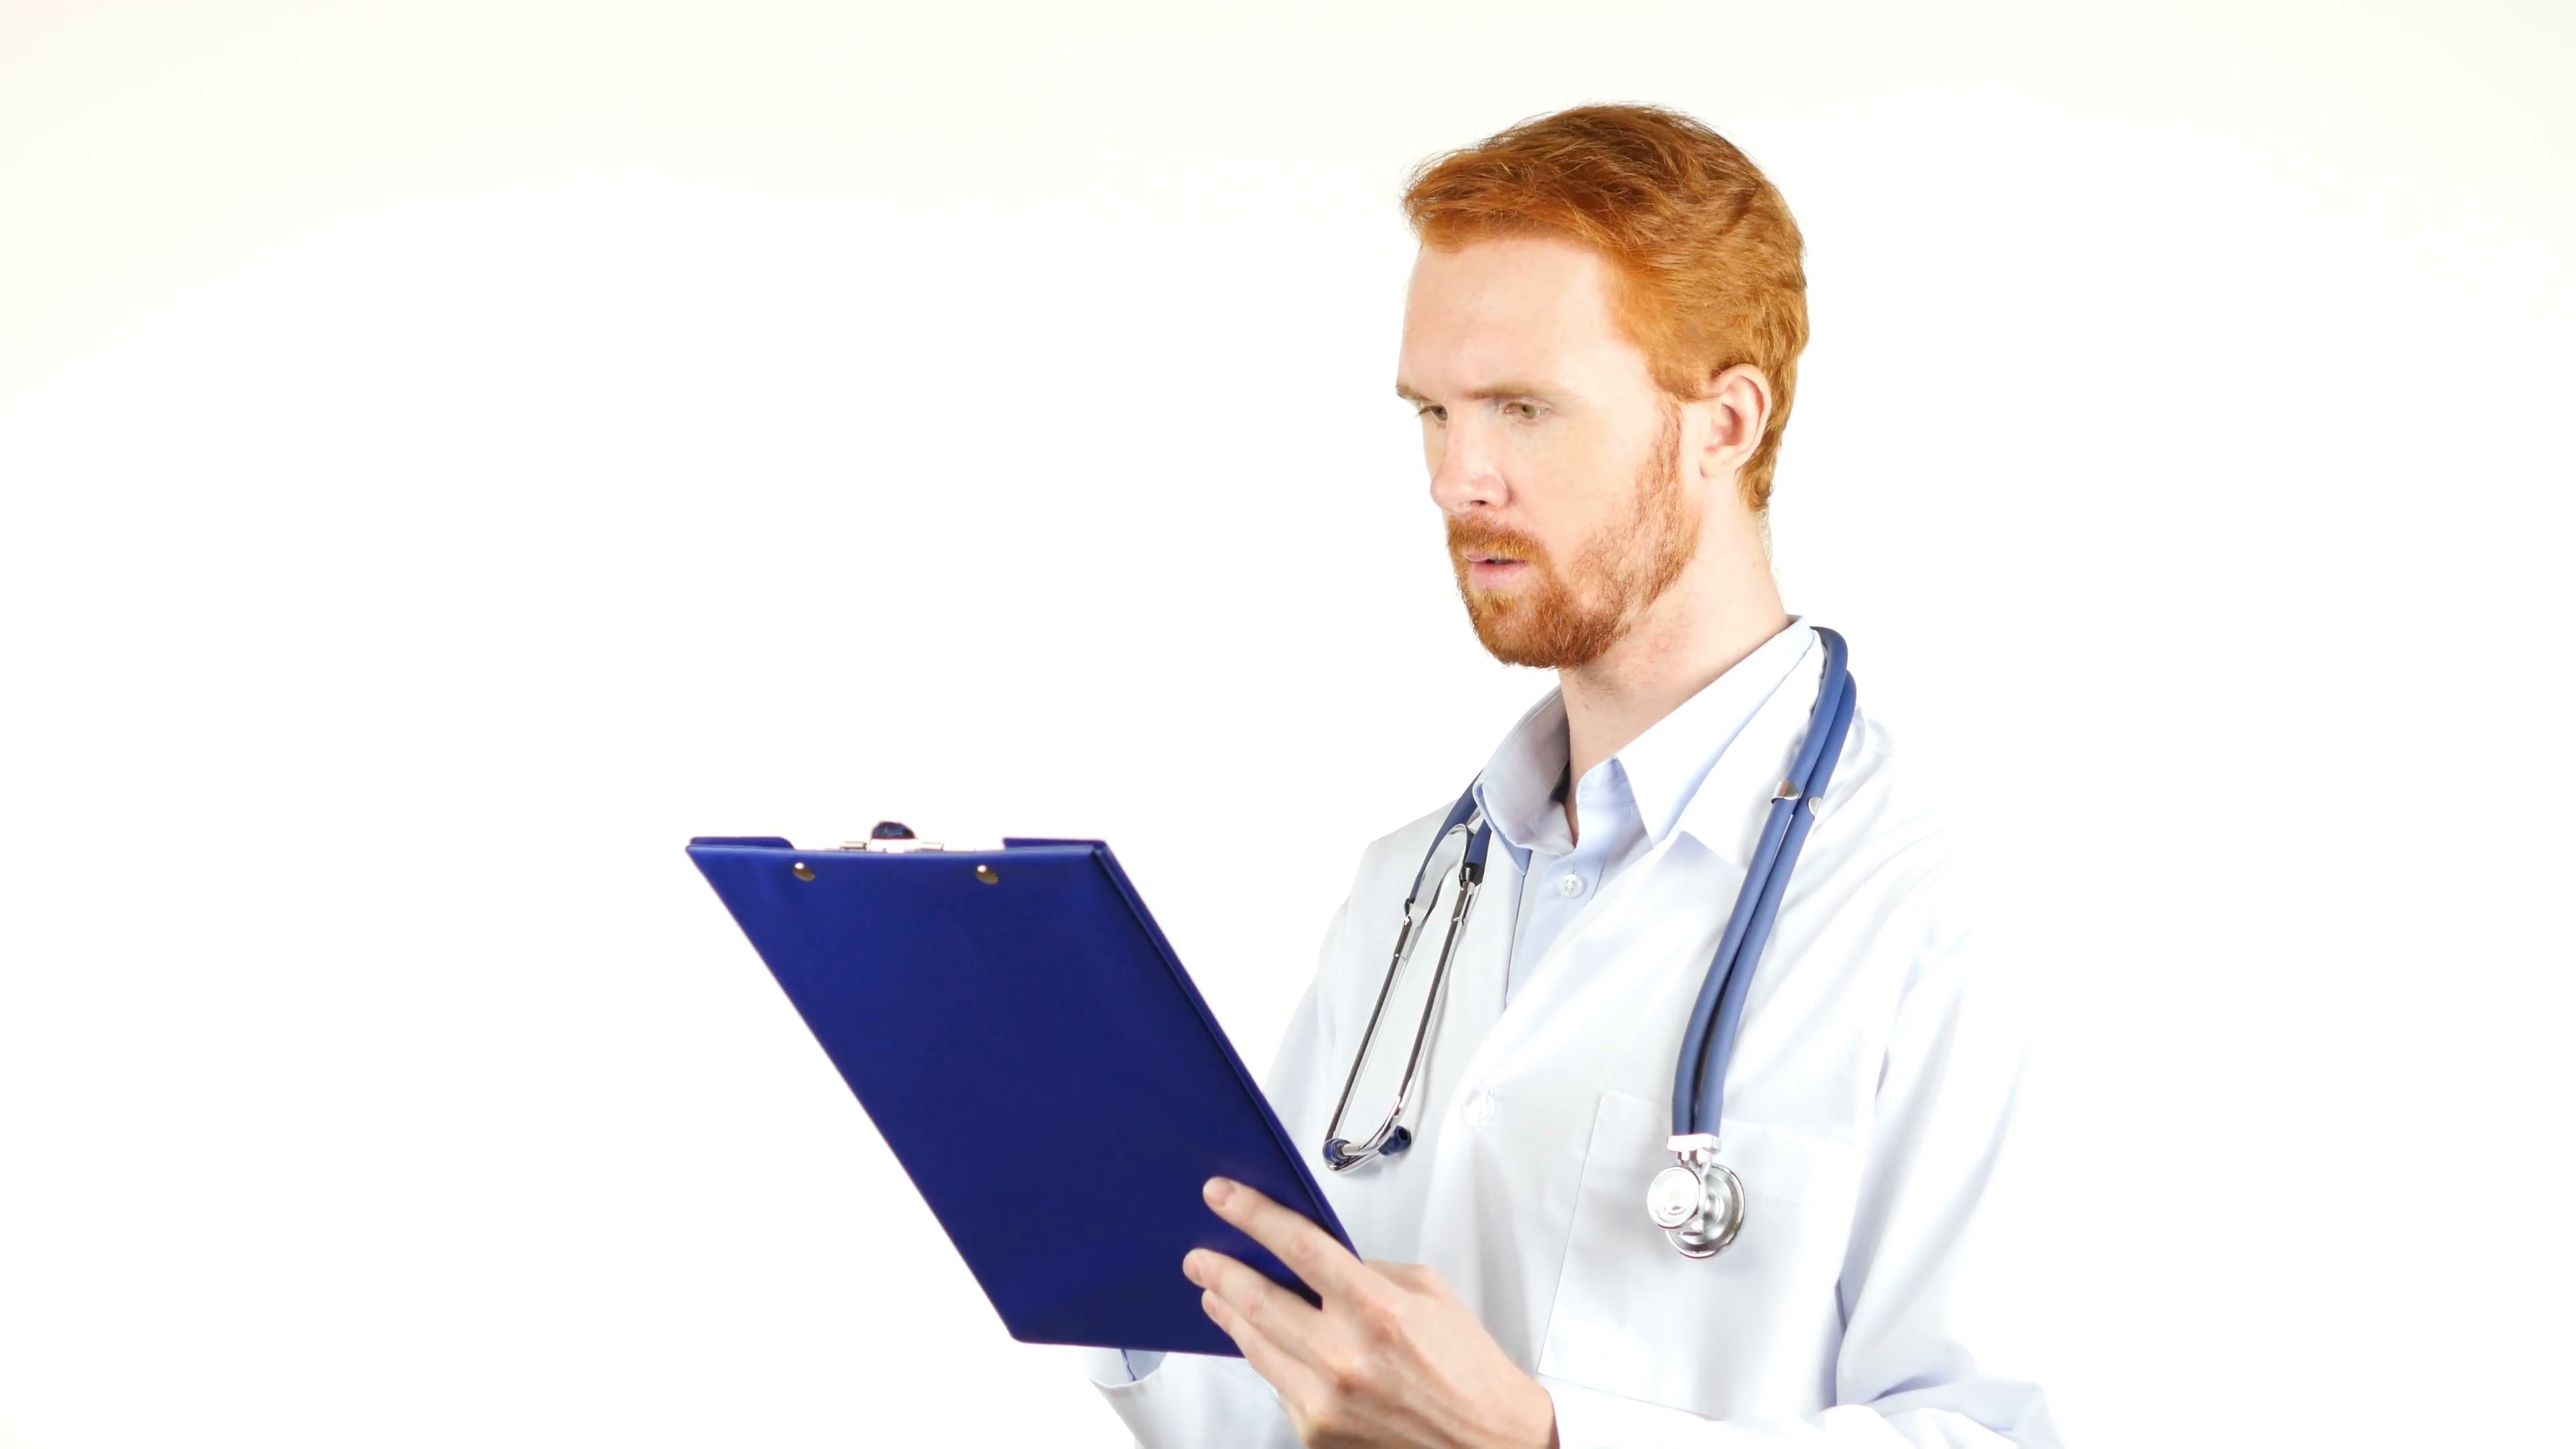 doctor-surgeon-reading-medical-reports-white-background_hsm2kkhbw__F0000